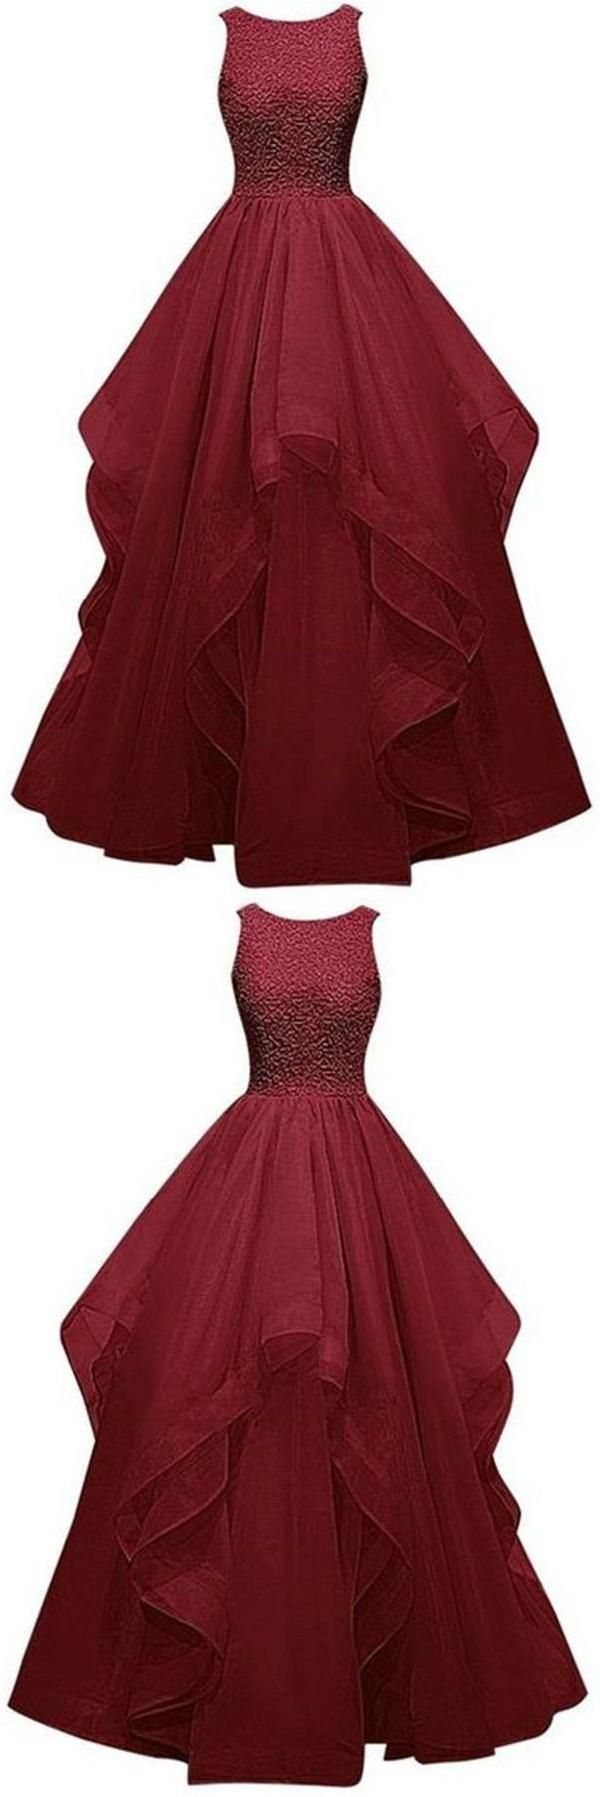 Burgundy prom dresses pretty prom dresses ball gown prom dresses